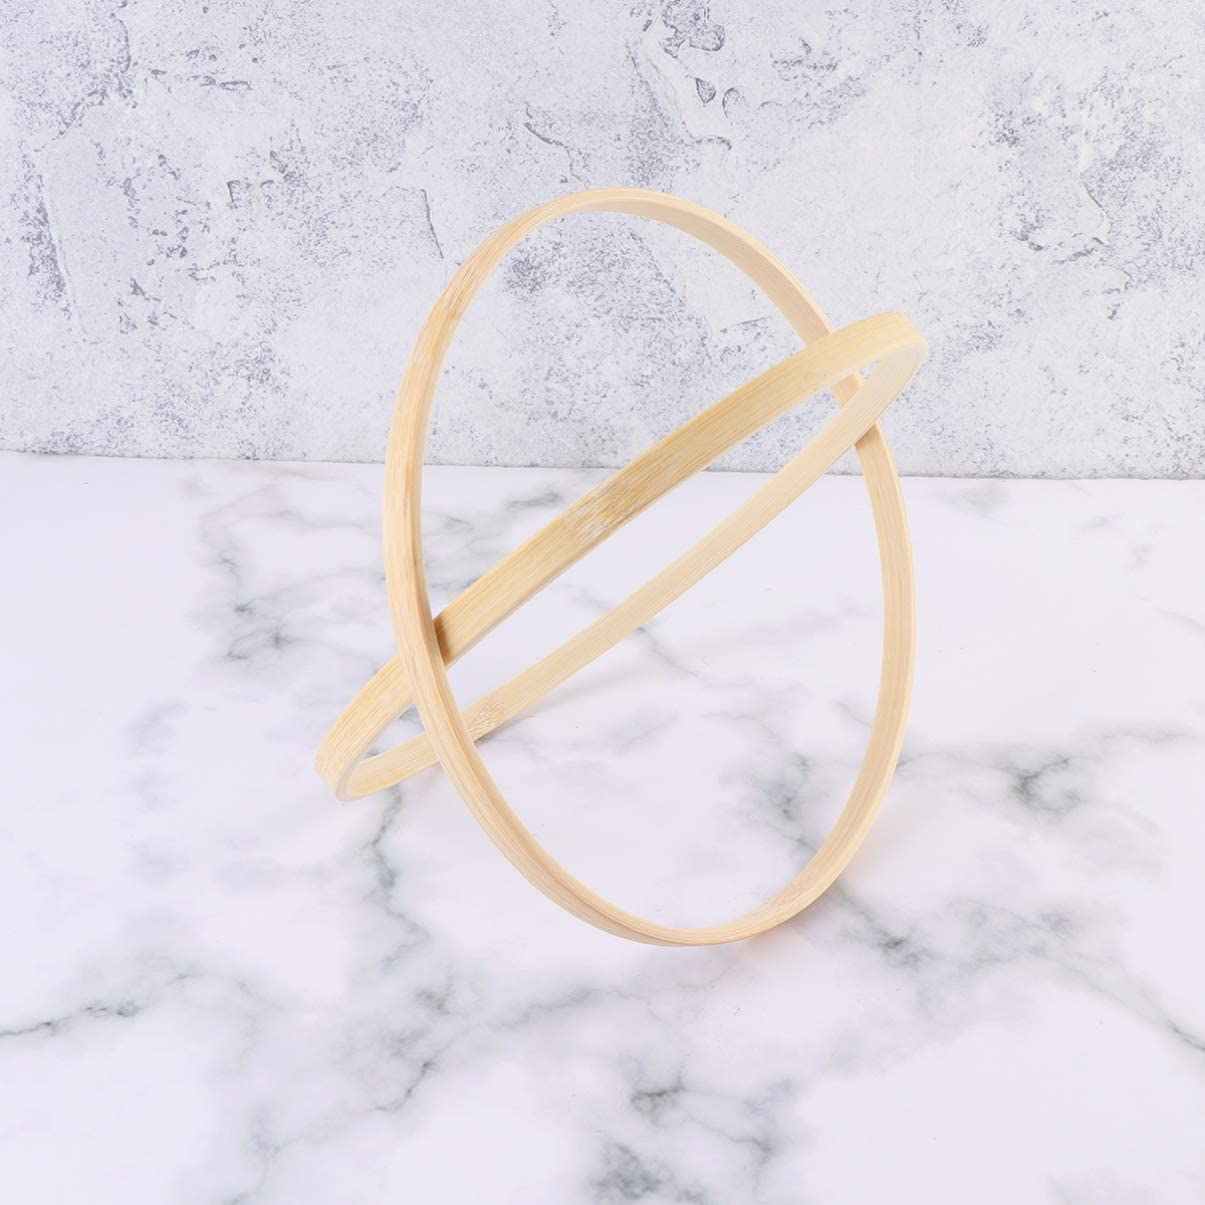 HEALLILY Dream Catcher Ring Bamboo Hoops Wooden Ring Circles for DIY Craft Dream Catcher Making Accessaries 19cm 2Pcs